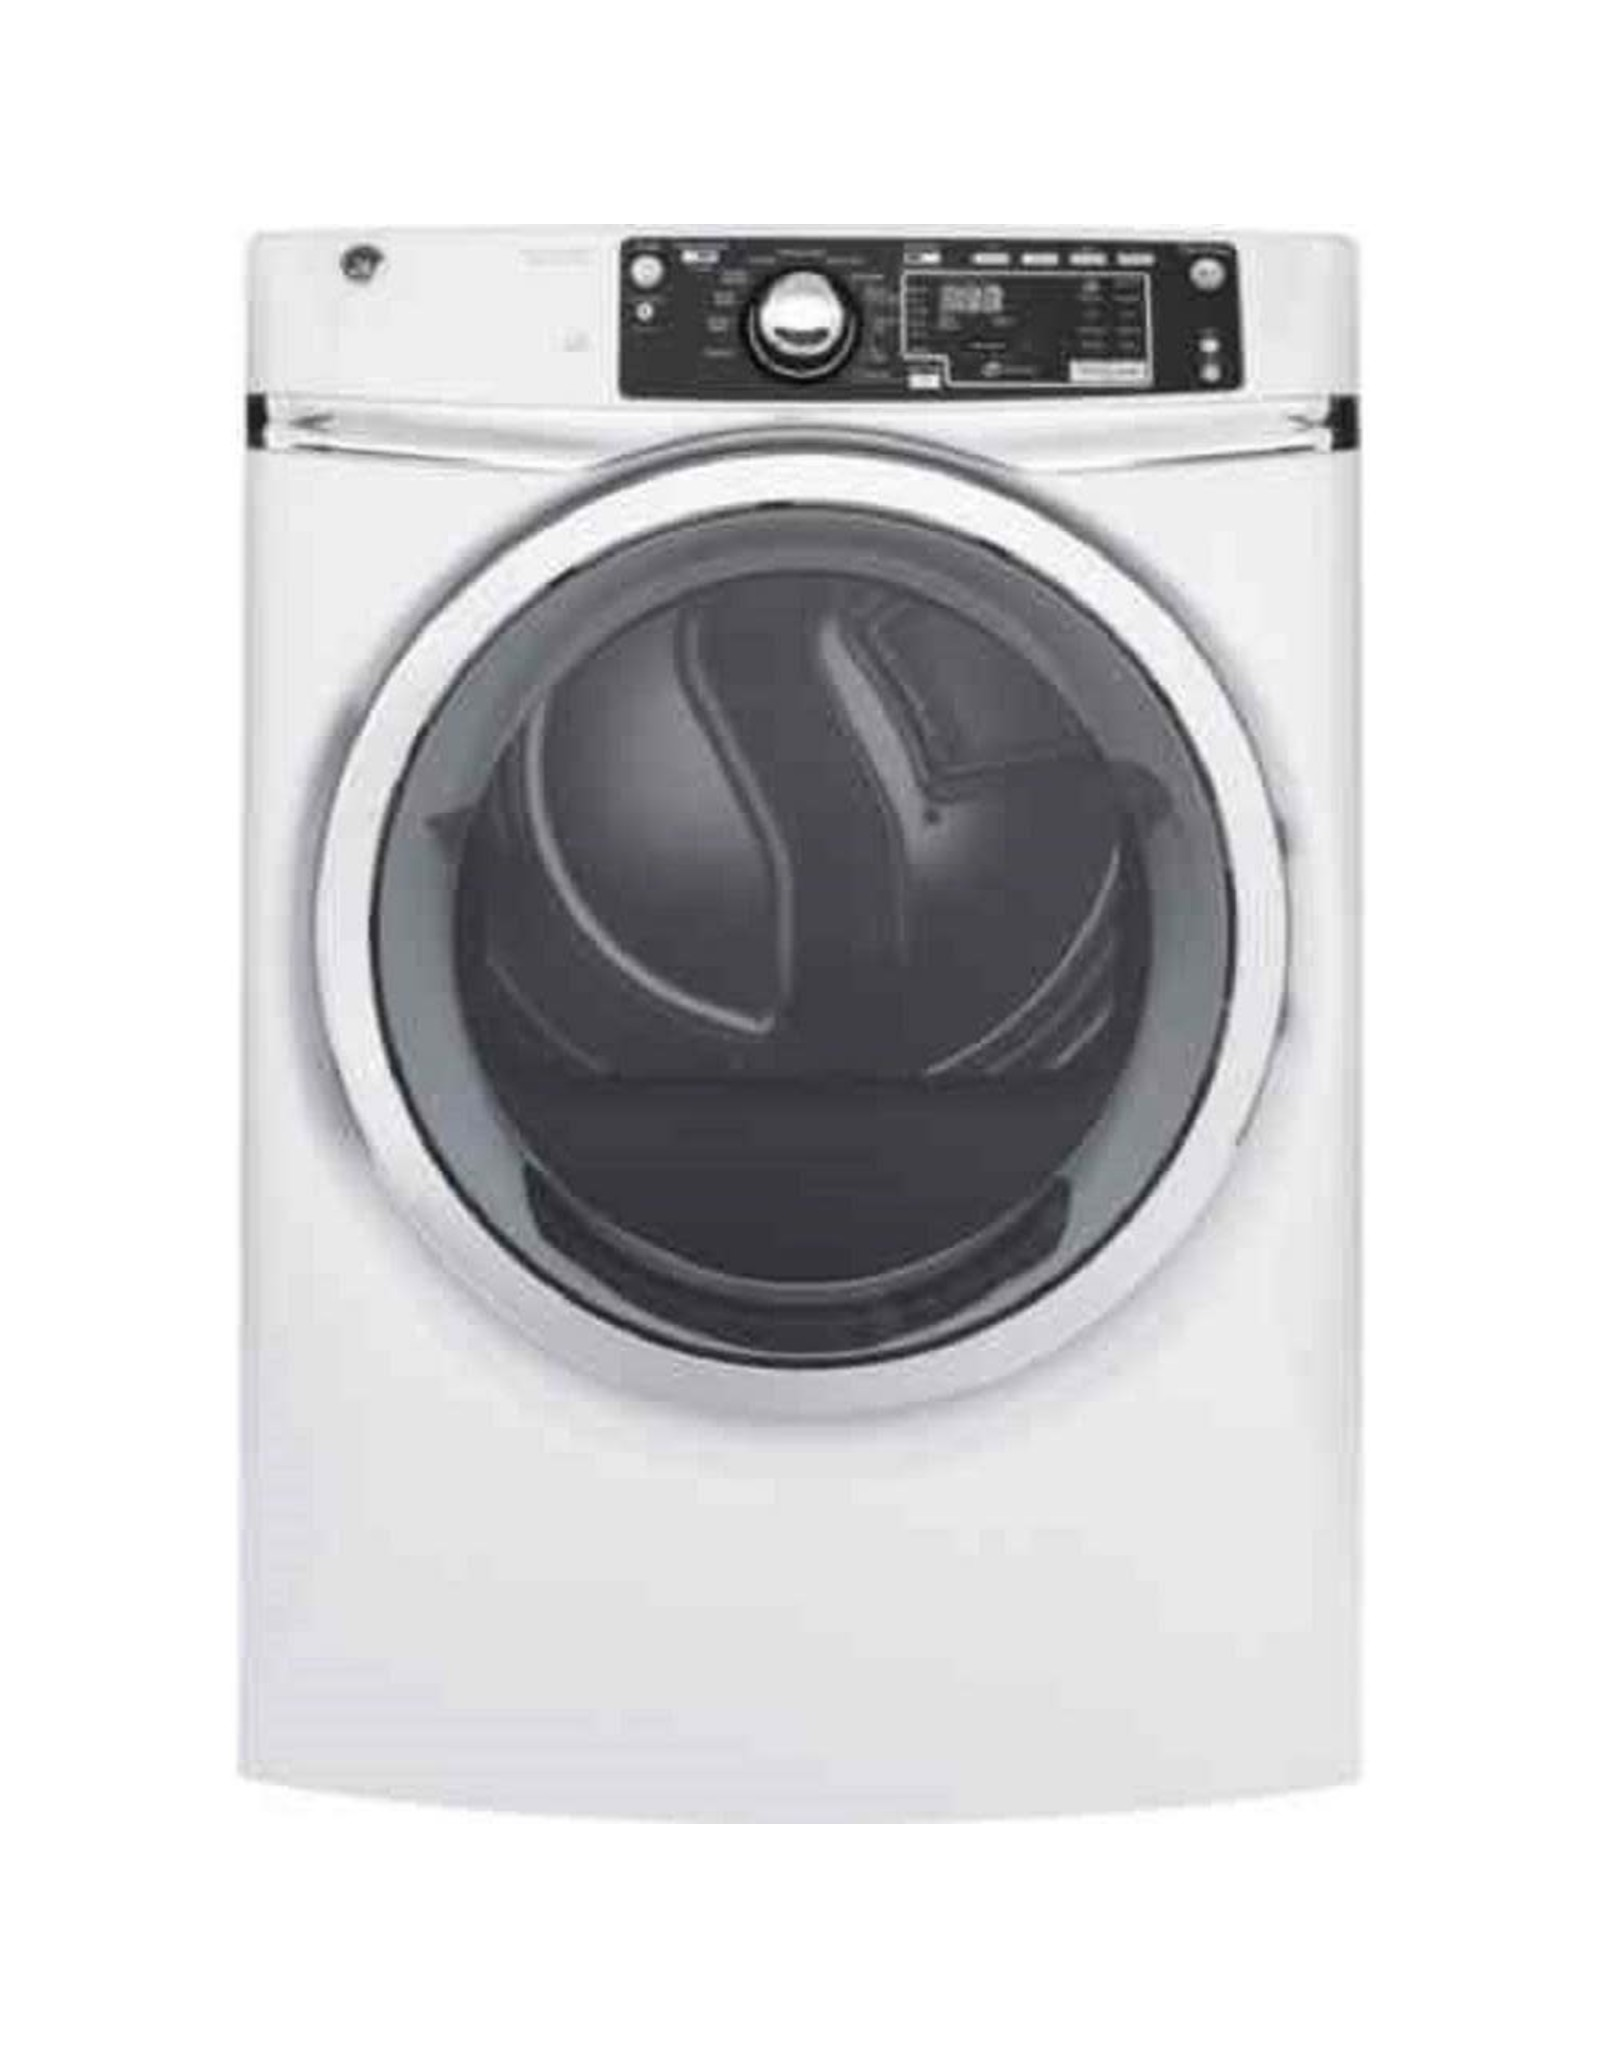 GE GFD48ESSKWW 8.3 cu. ft. 240 Volt White Stackable Electric Vented Dryer with Steam, ENERGY STAR